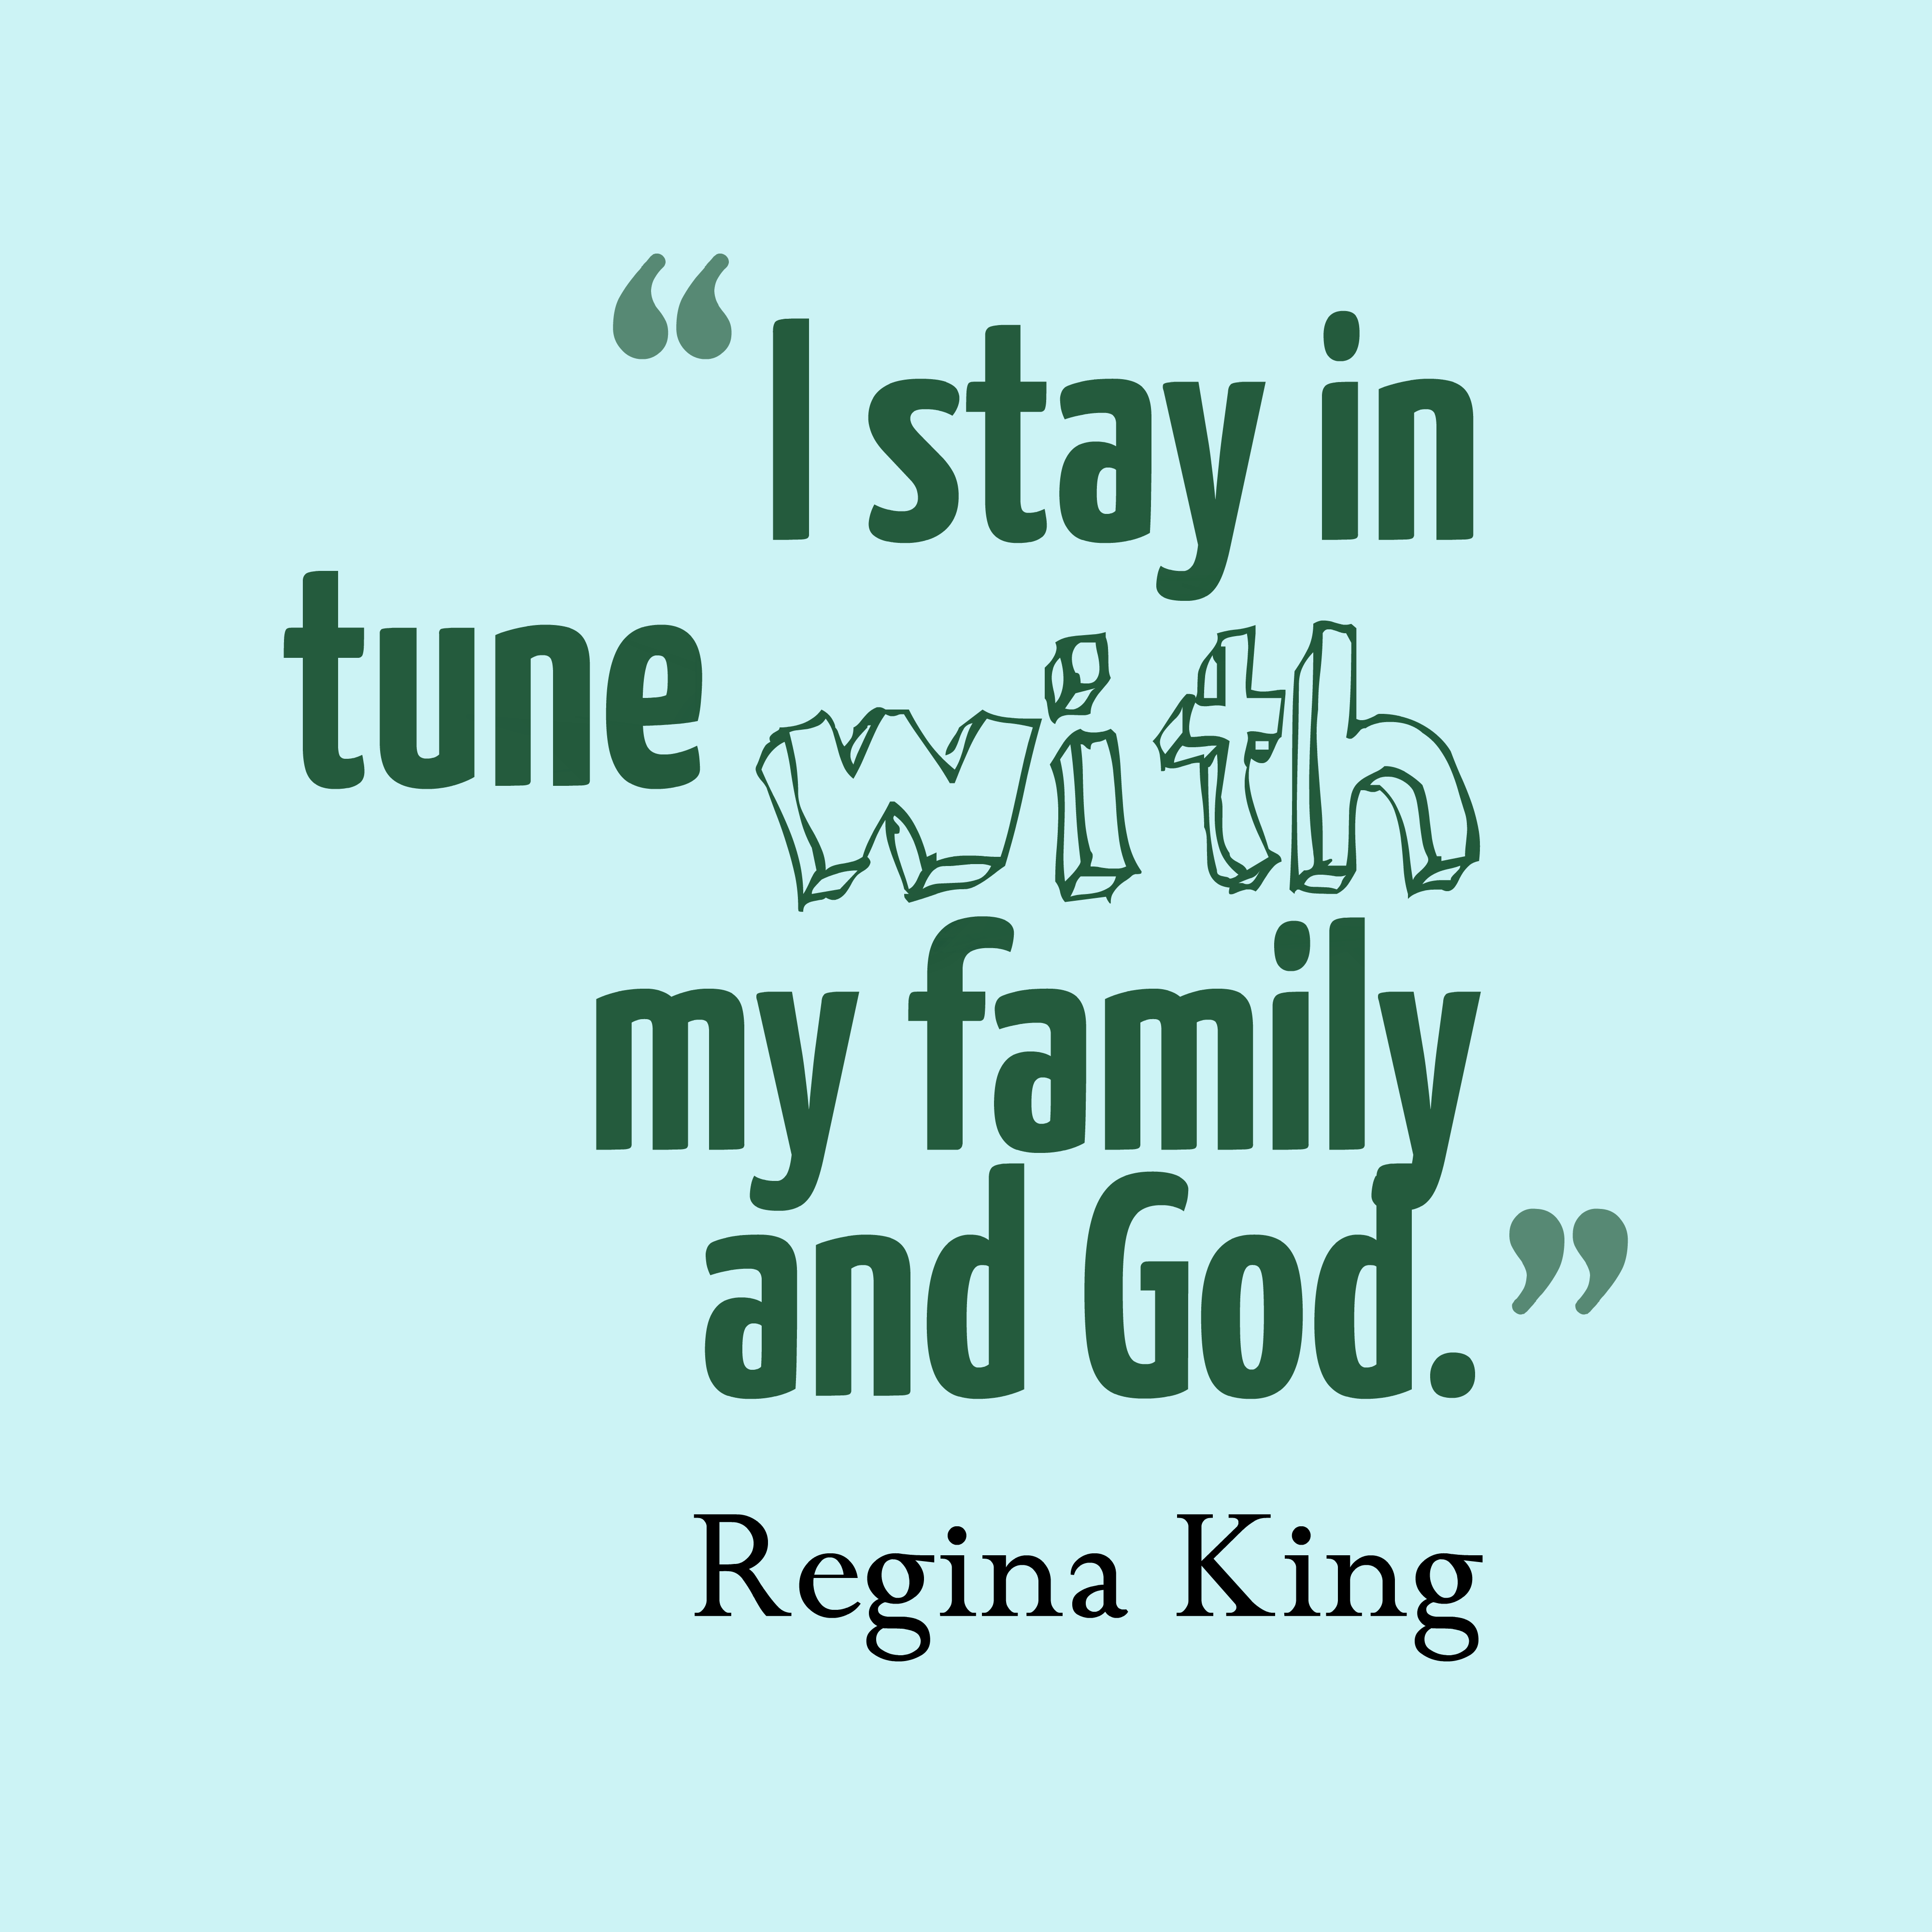 Picture Quote Maker Amusing 118 Best Regina King Quotes Images